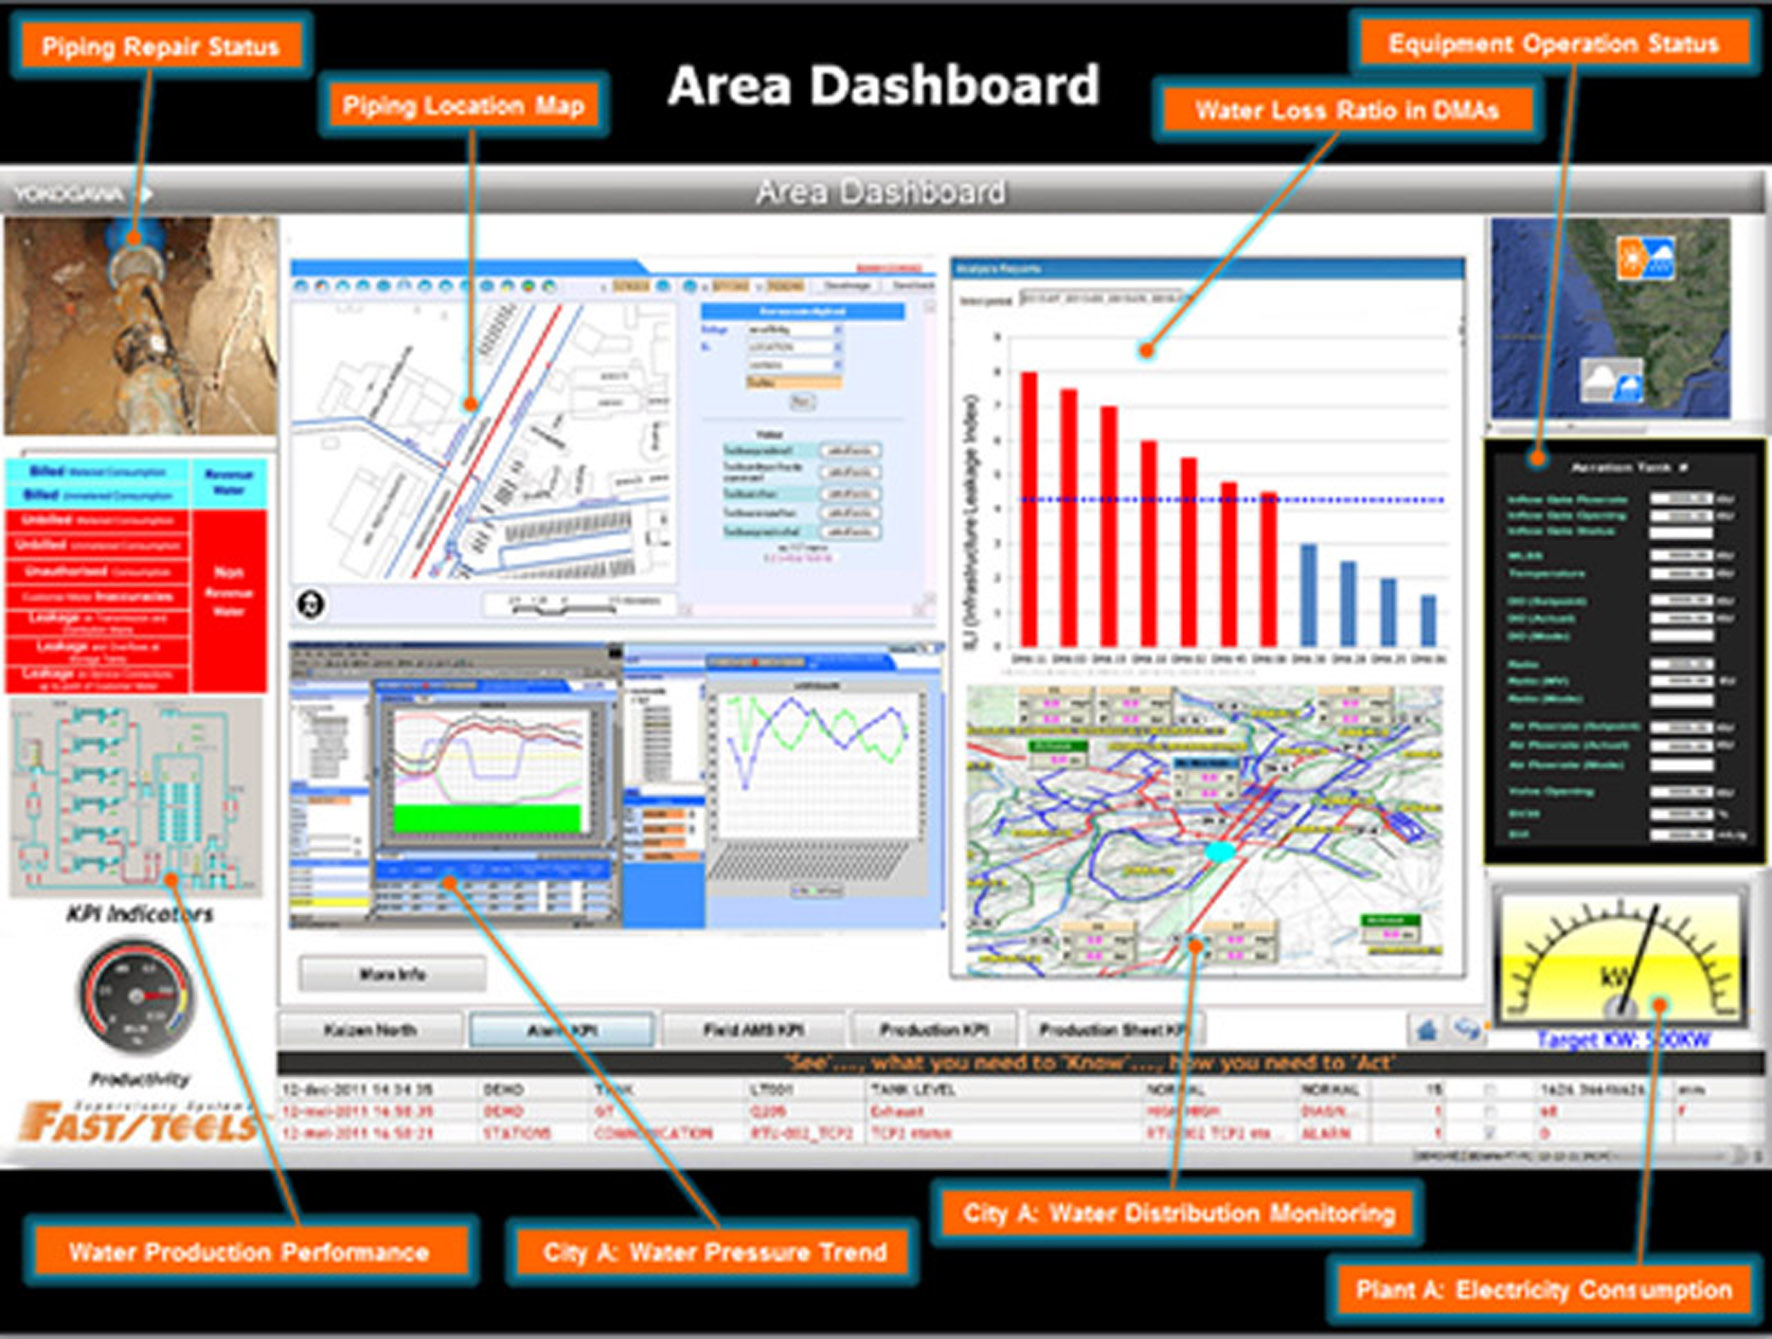 Area Dashboard for the water plant